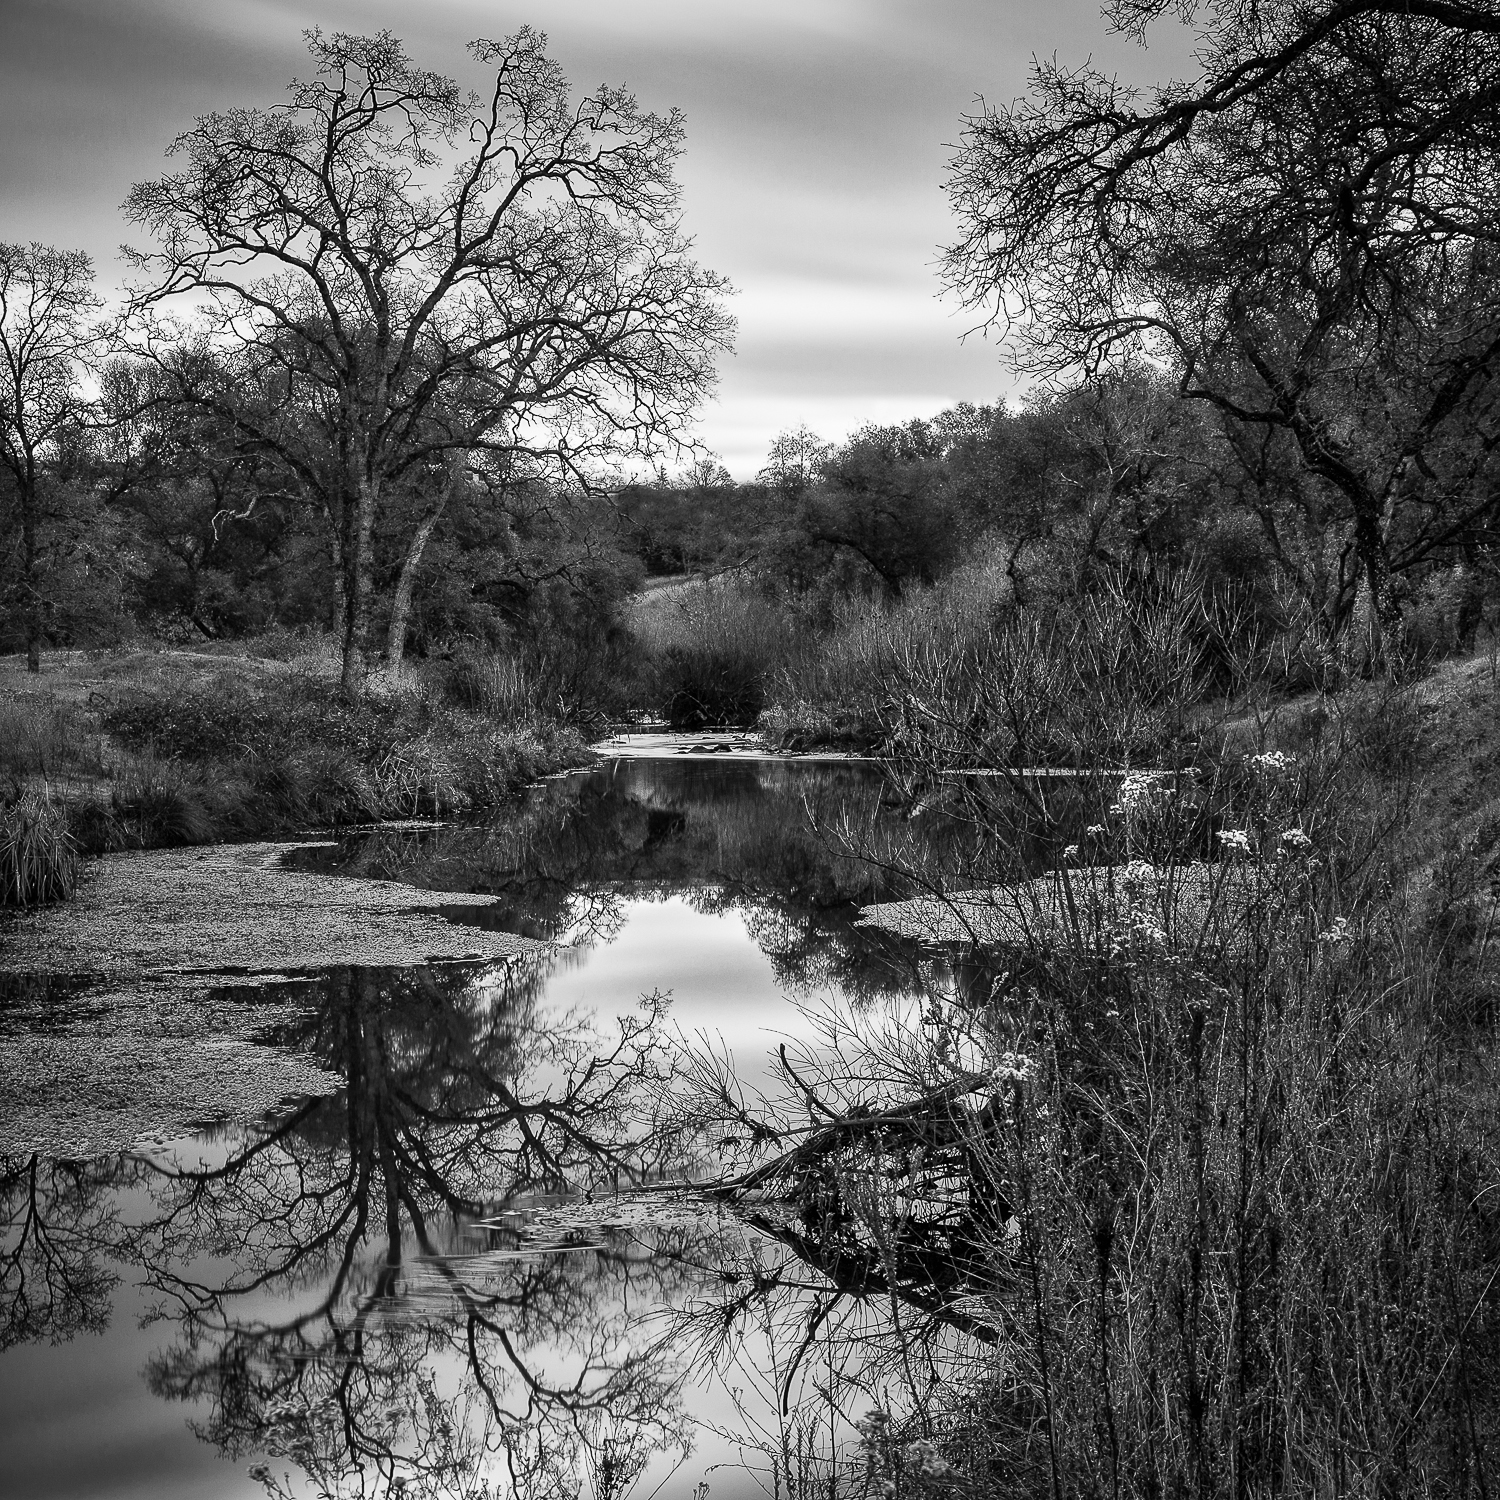 Natural Water Garden, Olympus Pointe, Placer County, California